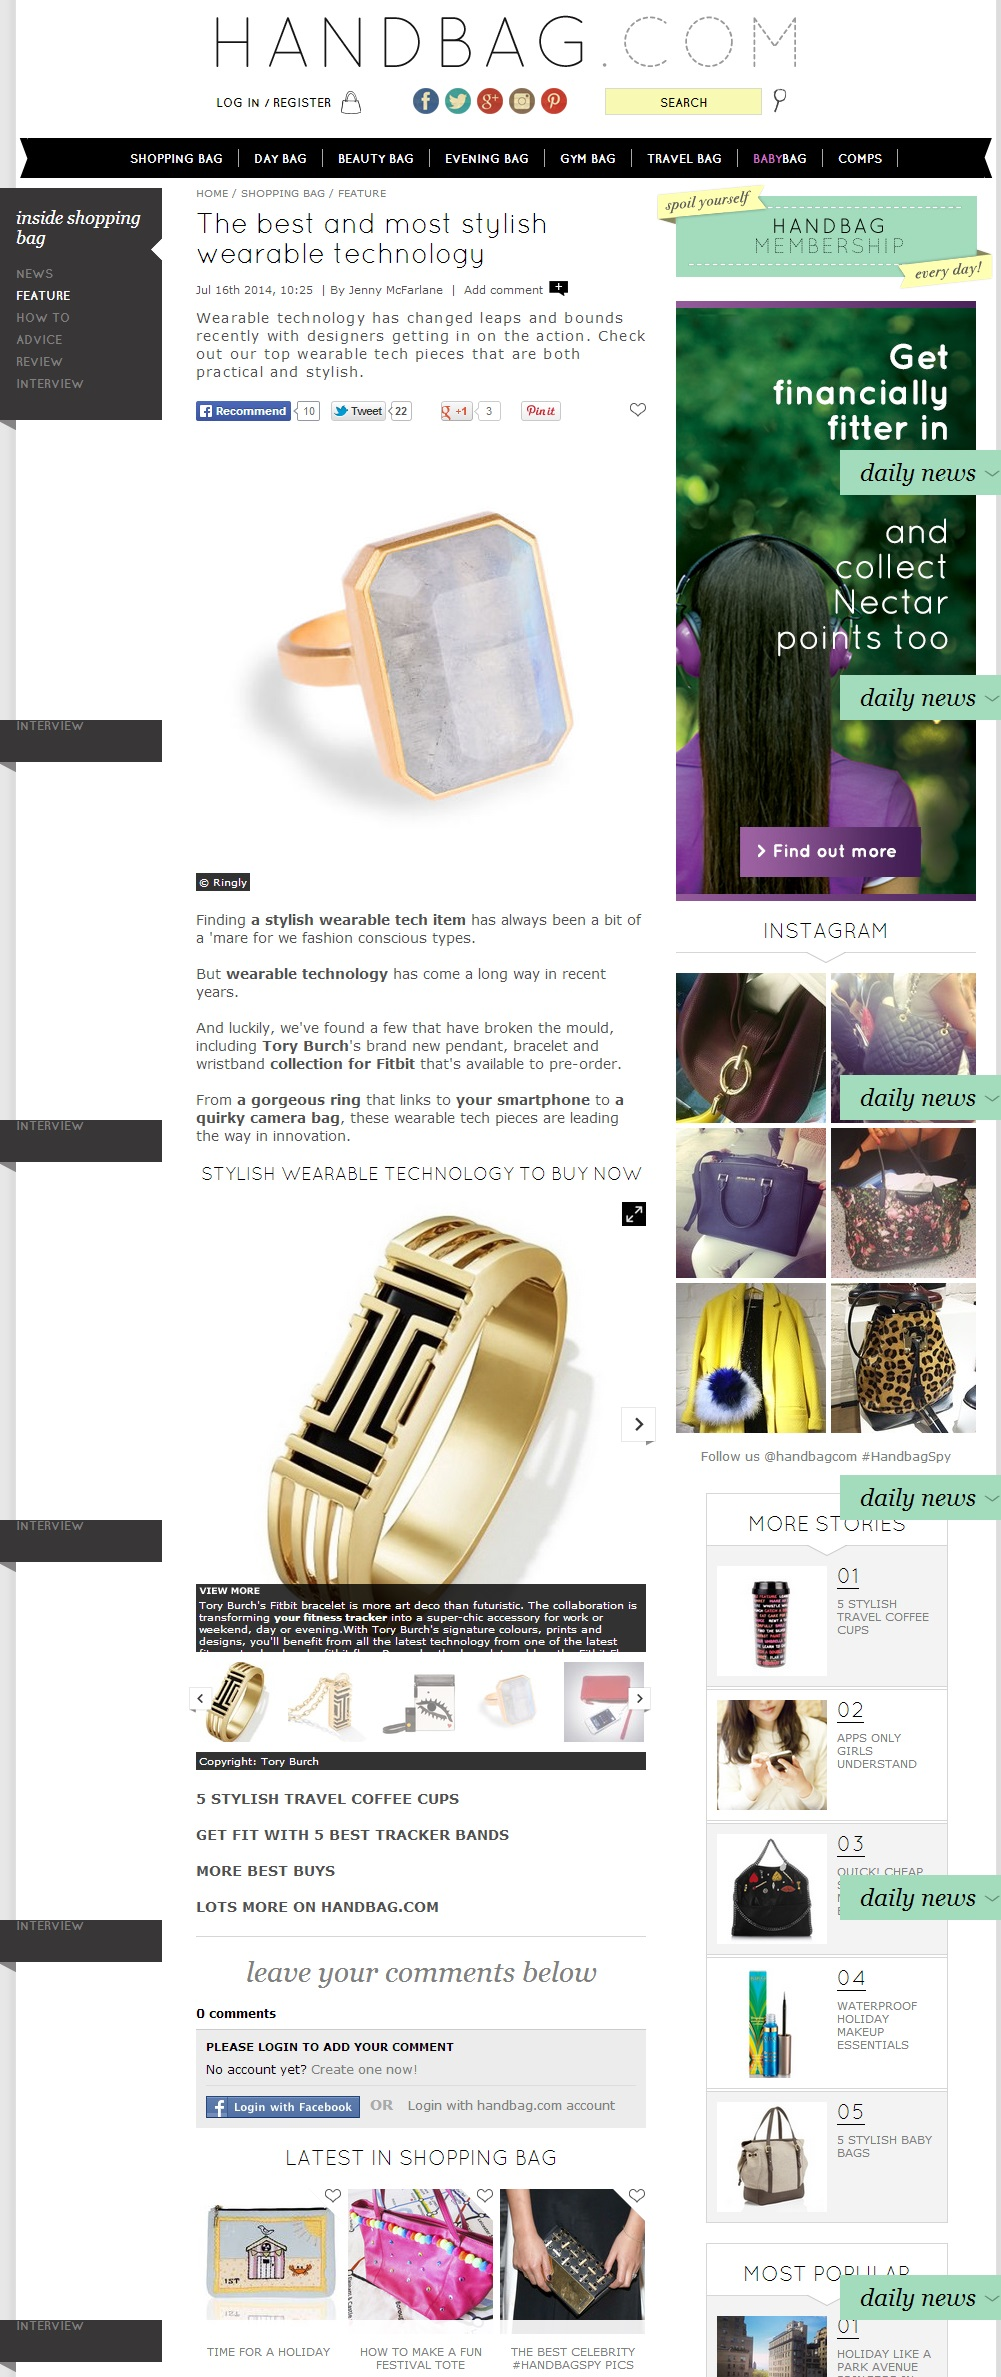 screencapture-www-handbag-com-shopping-bag-feature-a576989-the-best-and-most-stylish-wearable-technology-html